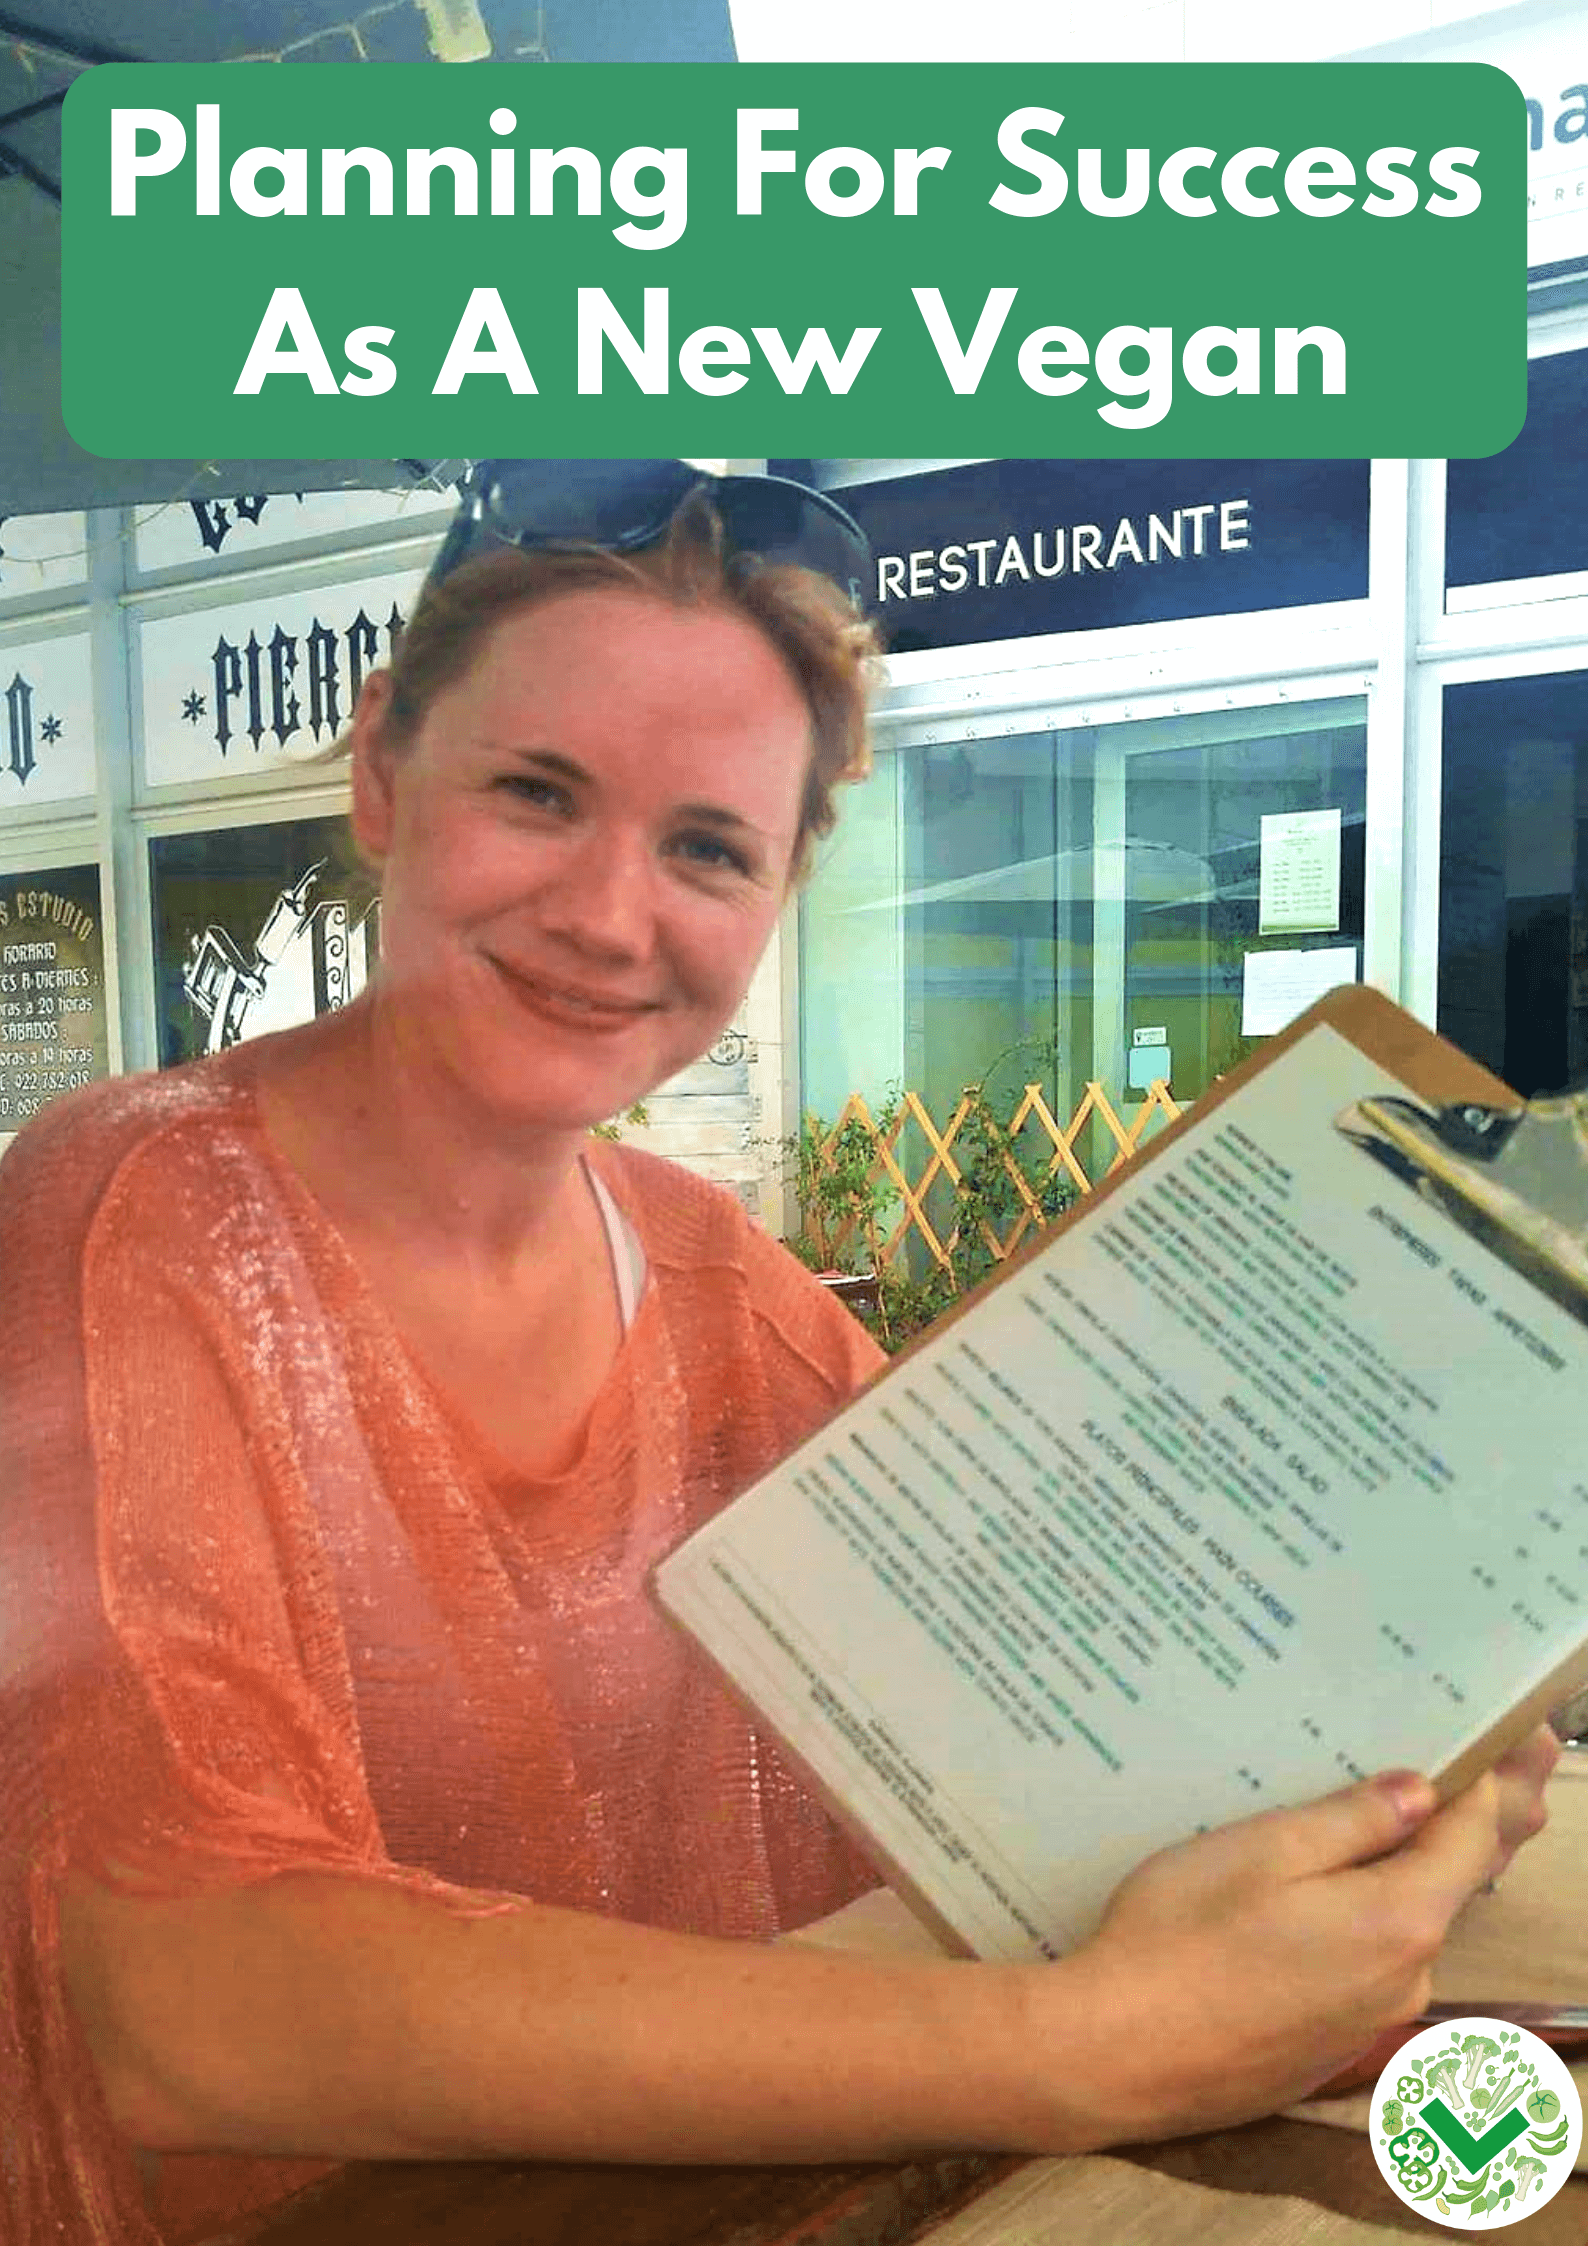 Planning For Success As A New Vegan